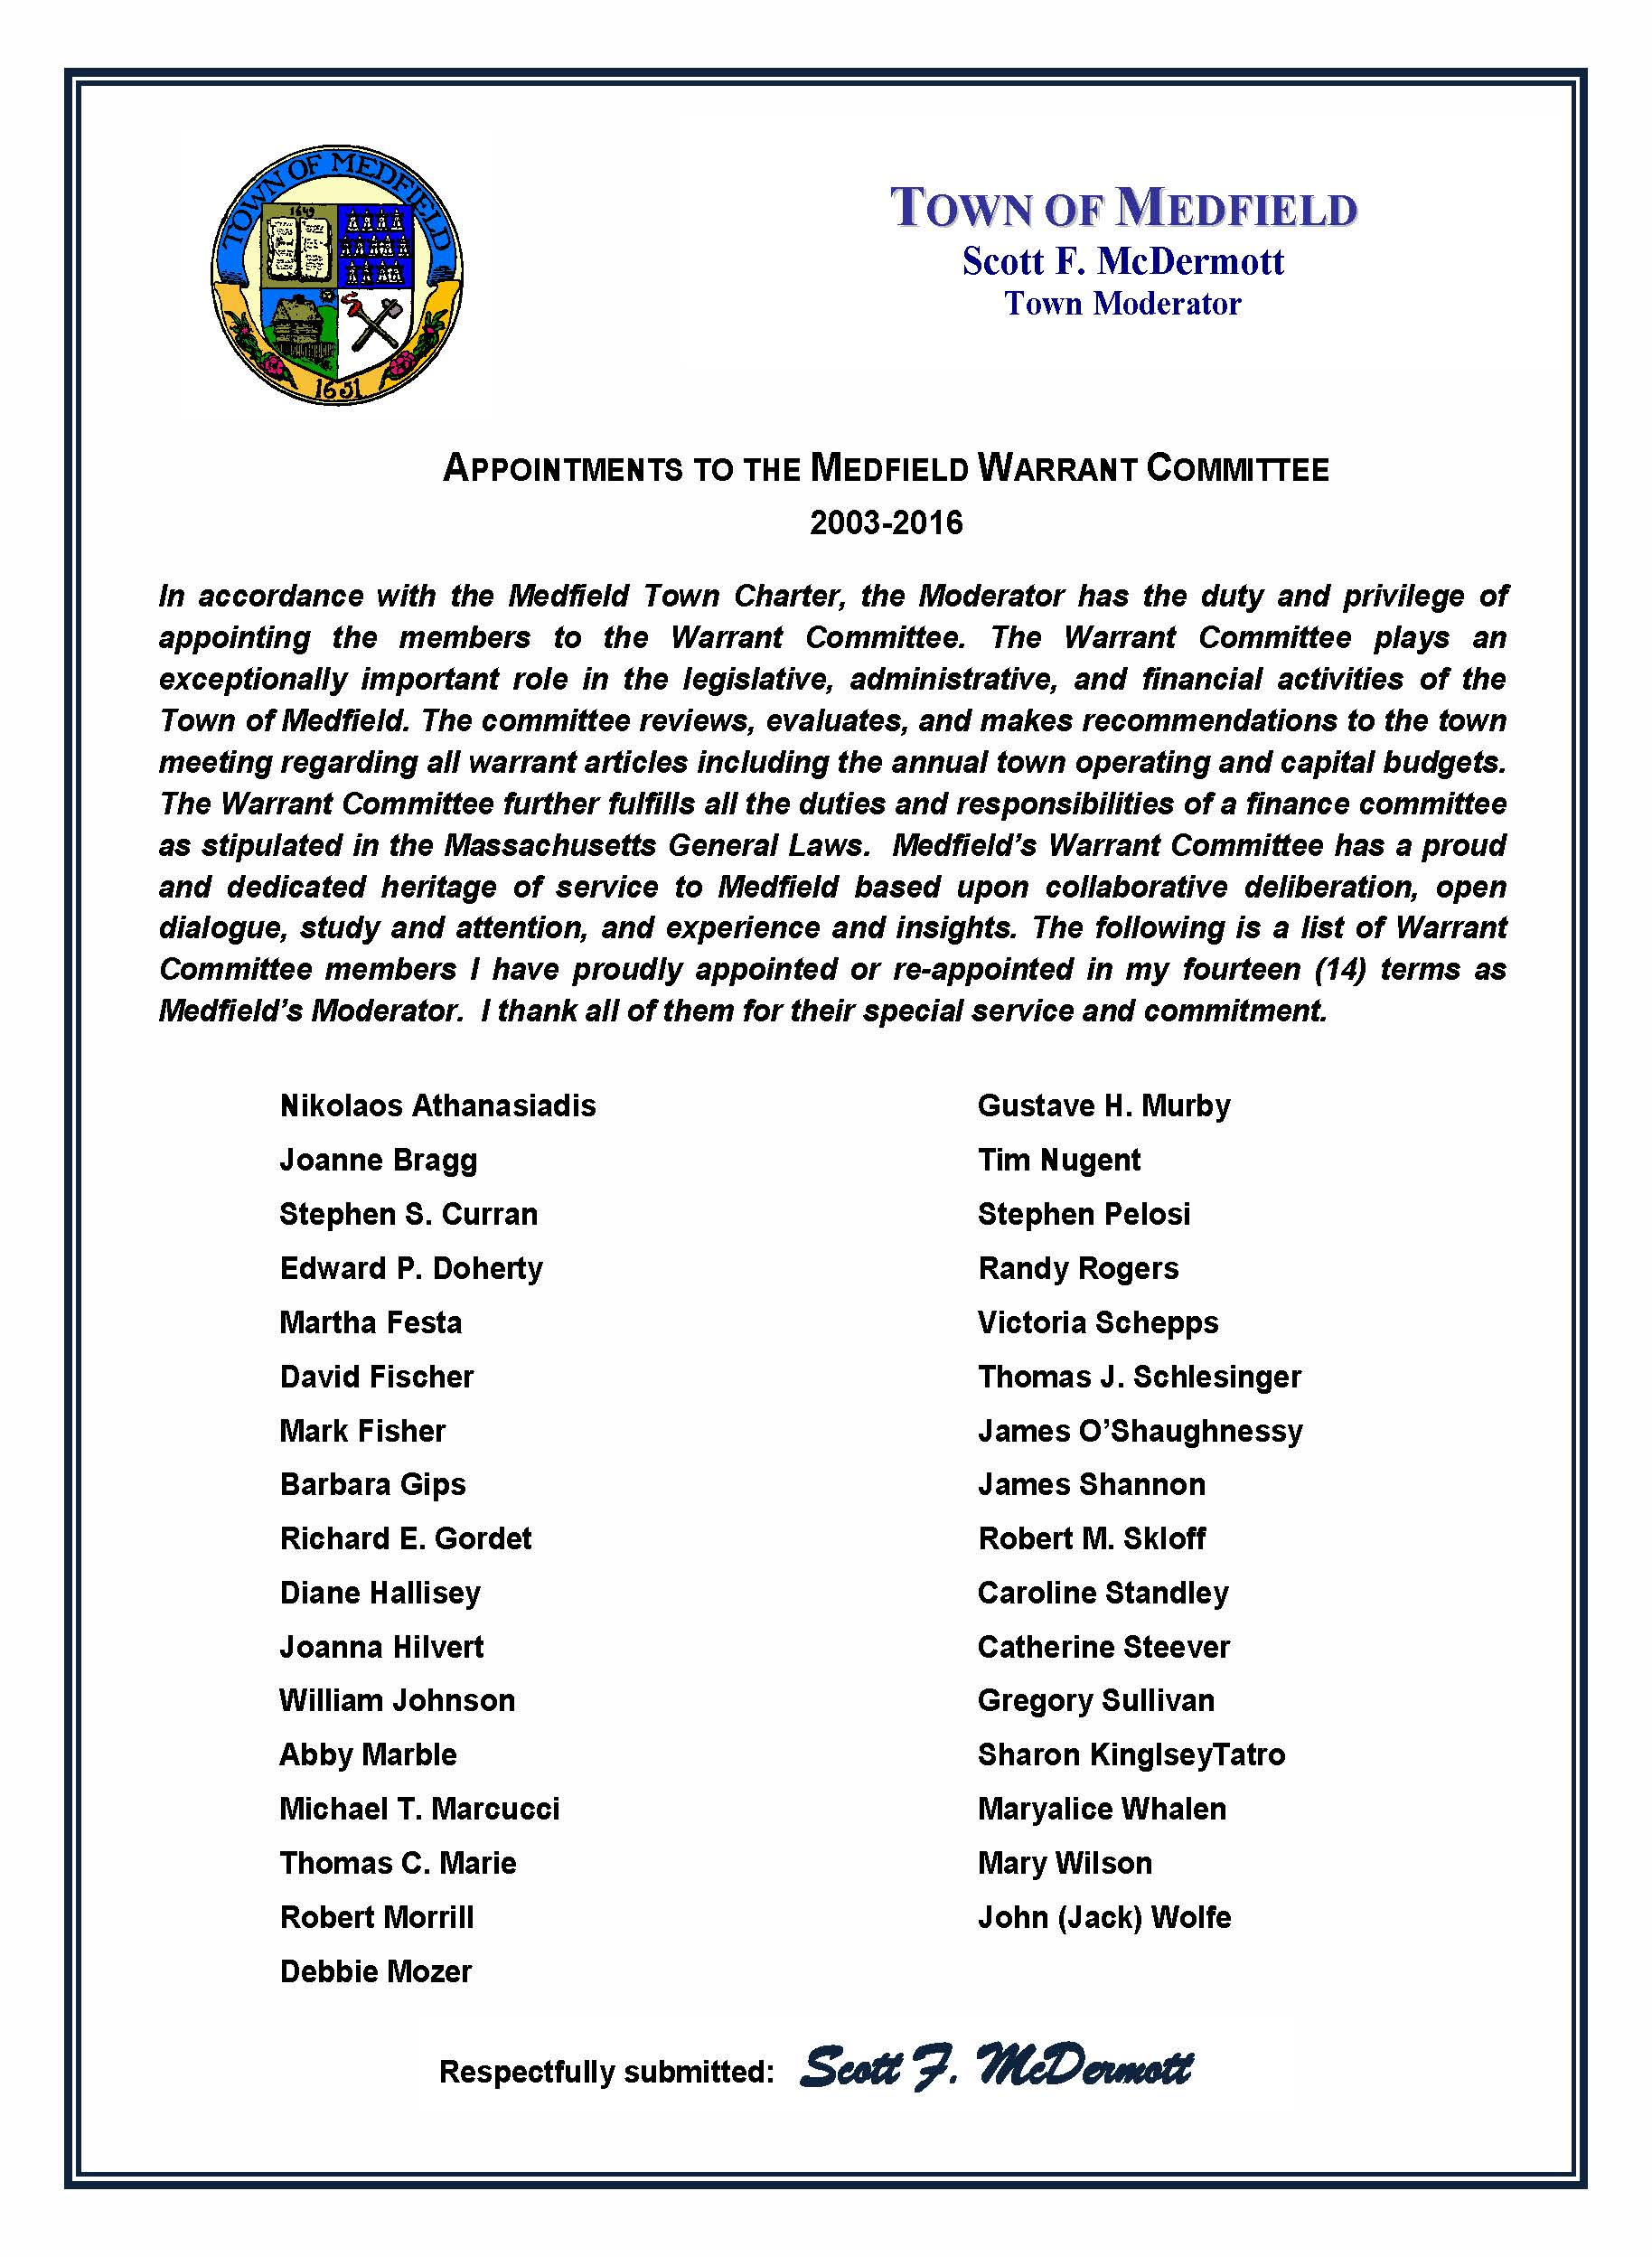 APPOINTMENTS TO THE MEDFIELD WARRANT COMMITTEE 2003-2016 In accordance with the Medfield Town Charter, the Moderator has the duty and privilege of appointing the members to the Warrant Committee. The Warrant Committee plays an exceptionally important role in the legislative, administrative, and financial activities of the Town of Medfield. The committee reviews, evaluates, and makes recommendations to the town meeting regarding all warrant articles including the annual town operating and capital budgets. The Warrant Committee further fulfills all the duties and responsibilities of a finance committee as stipulated in the Massachusetts General Laws. Medfield's Warrant Committee has a proud and dedicated heritage of service to Medfield based upon collaborative deliberation, open dialogue, study and attention, and experience and insights. The following is a list of Warrant Committee members I have proudly appointed or re-appointed in my fourteen (14) terms as Medfield's Moderator. I thank all of them for their special service and commitment. Nikolaos Athanasiadis Joanne Bragg Stephen S. Curran Edward P. Doherty Martha Festa David Fischer Mark Fisher Barbara Gips Richard E. Gordet Diane Hallisey Joanna Hilvert William Johnson Abby Marble Michael T. Marcucci Thomas C. Marie Robert Morrill Debbie Mozer Gustave H. Murby Tim Nugent Stephen Pelosi Randy Rogers Victoria Schepps Thomas J. Schlesinger James O'Shaughnessy James Shannon Robert M. Skloff Caroline Standley Catherine Steever Gregory Sullivan Sharon KinglseyTatro Maryalice Whalen Mary Wilson John (Jack) Wolfe TOWN OF MEDFIELD Scott F. McDermott Town Moderator Respectfully submitted: Scott F. McDermott